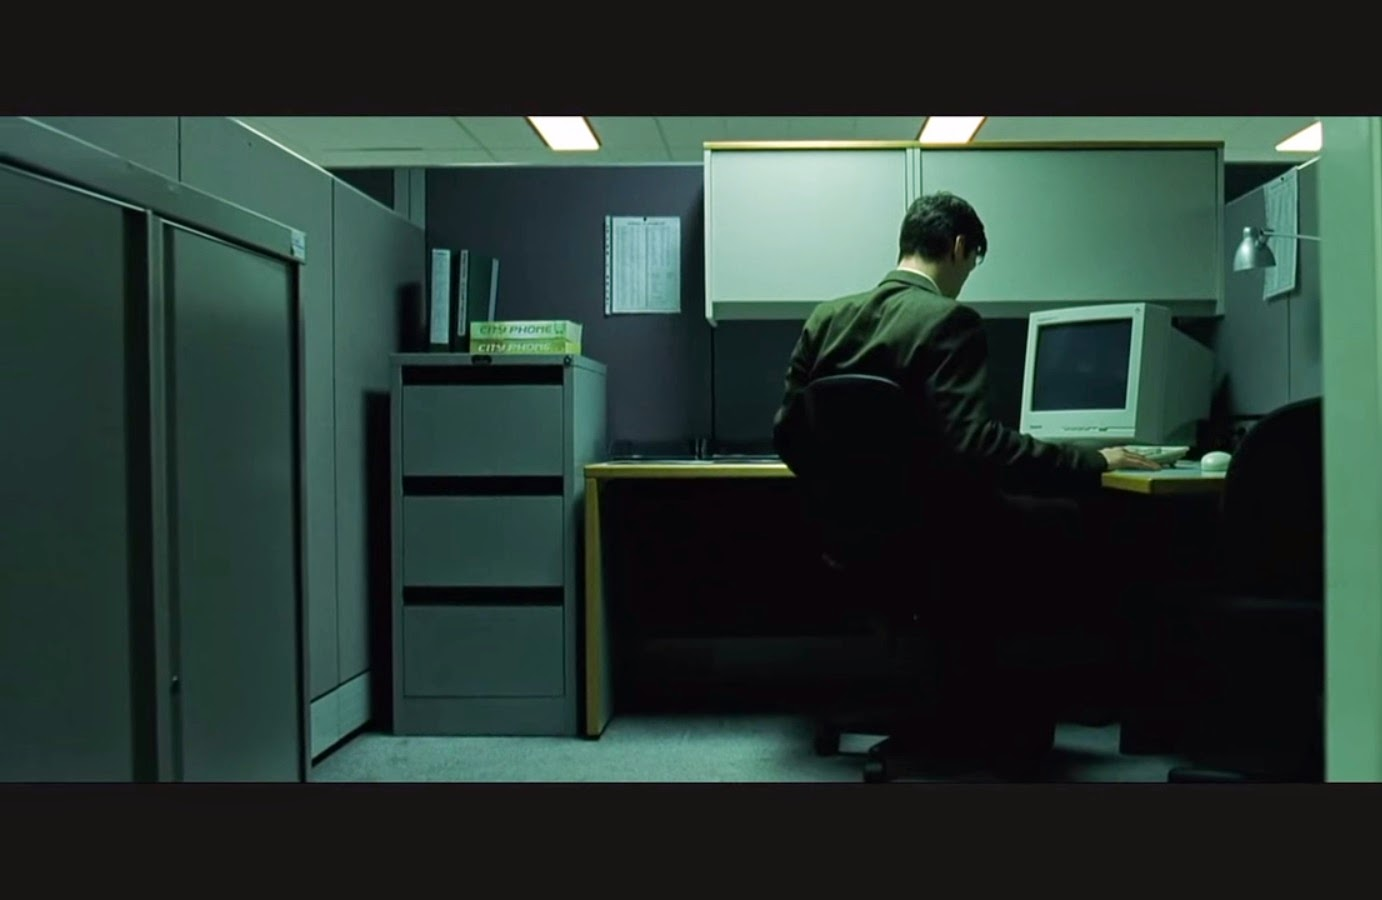 The Opening Dolly Shot Is Master For First Part Of Scene It Starts In Dark To Reveal Neo His Cubicle Boxed And Isolated As A